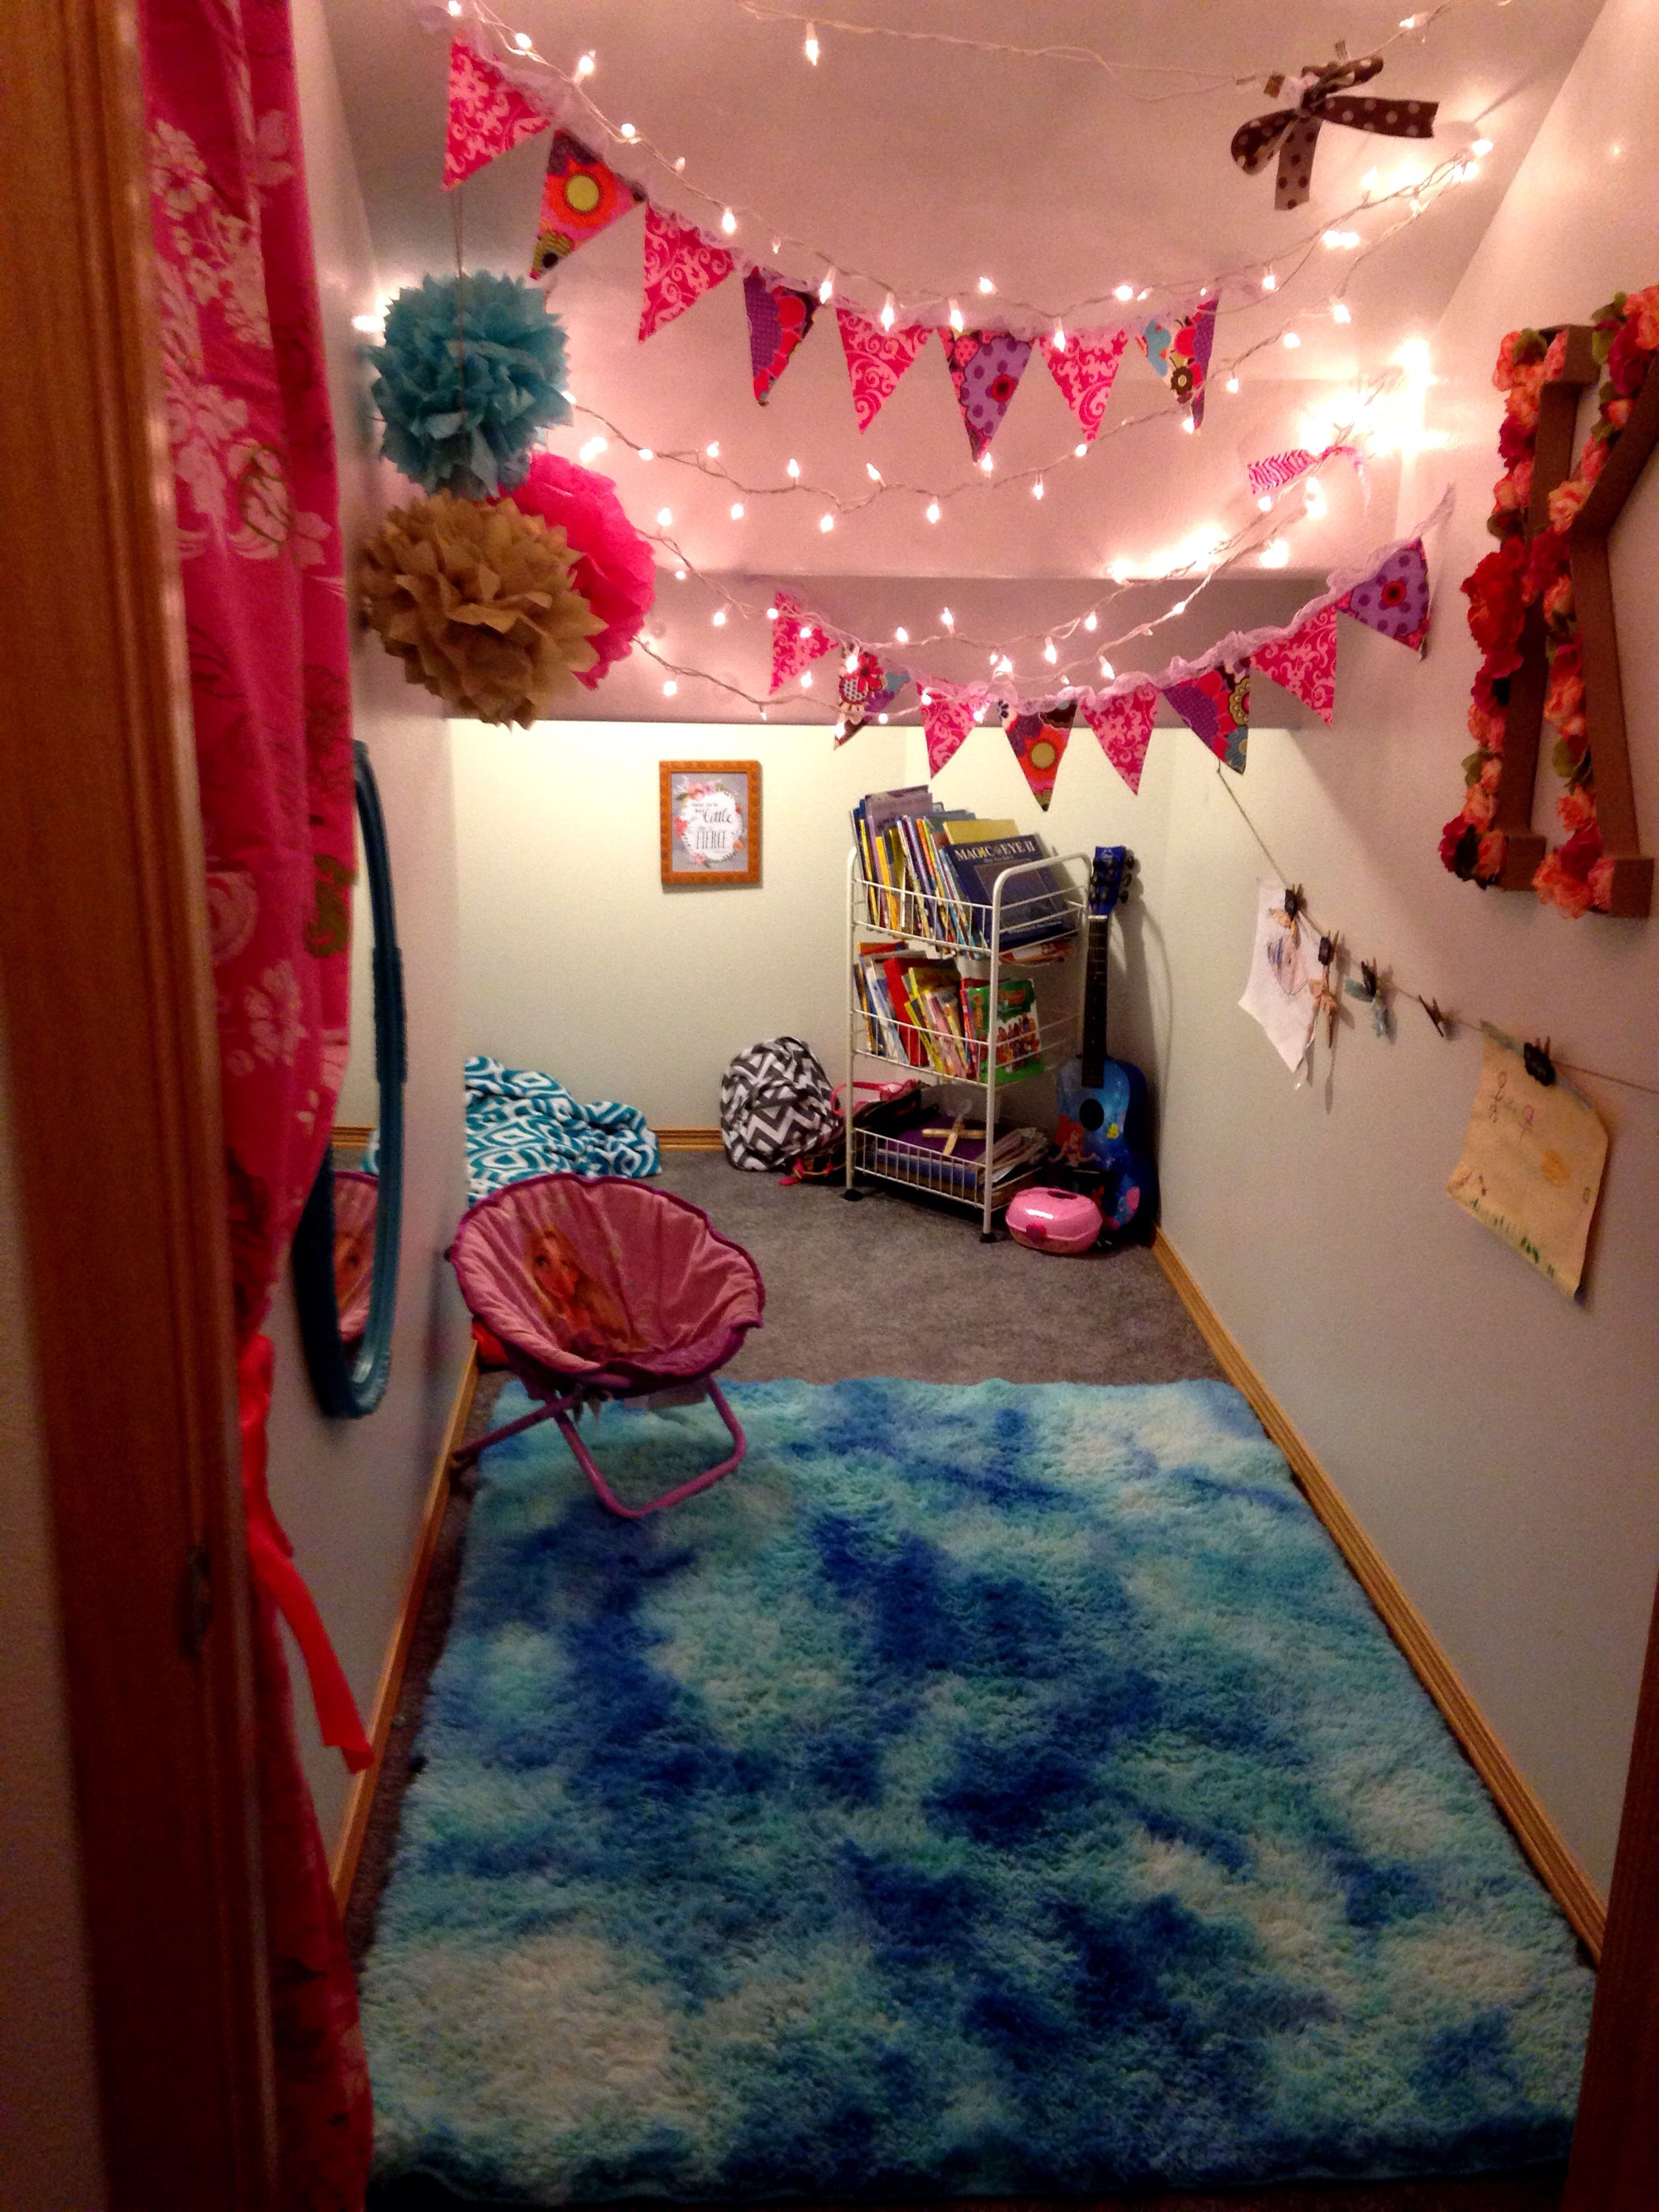 Under The Stairs Playroom For A Little Girl Features And Over Dyed